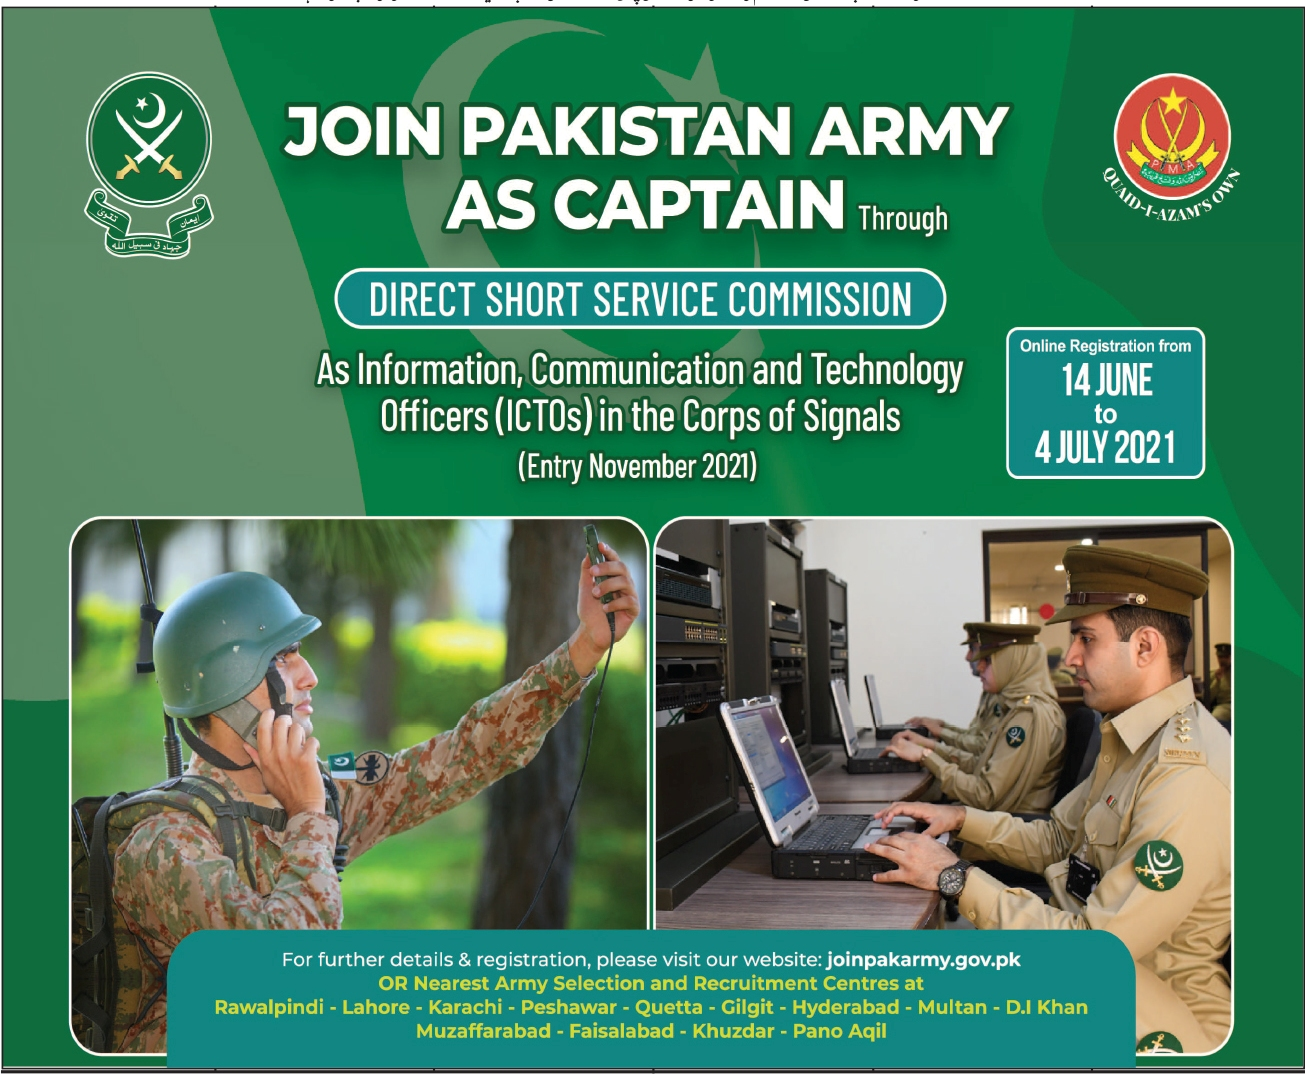 Jobs in Pakistan Army As A Captain Through Direct Short Service Commission 2021